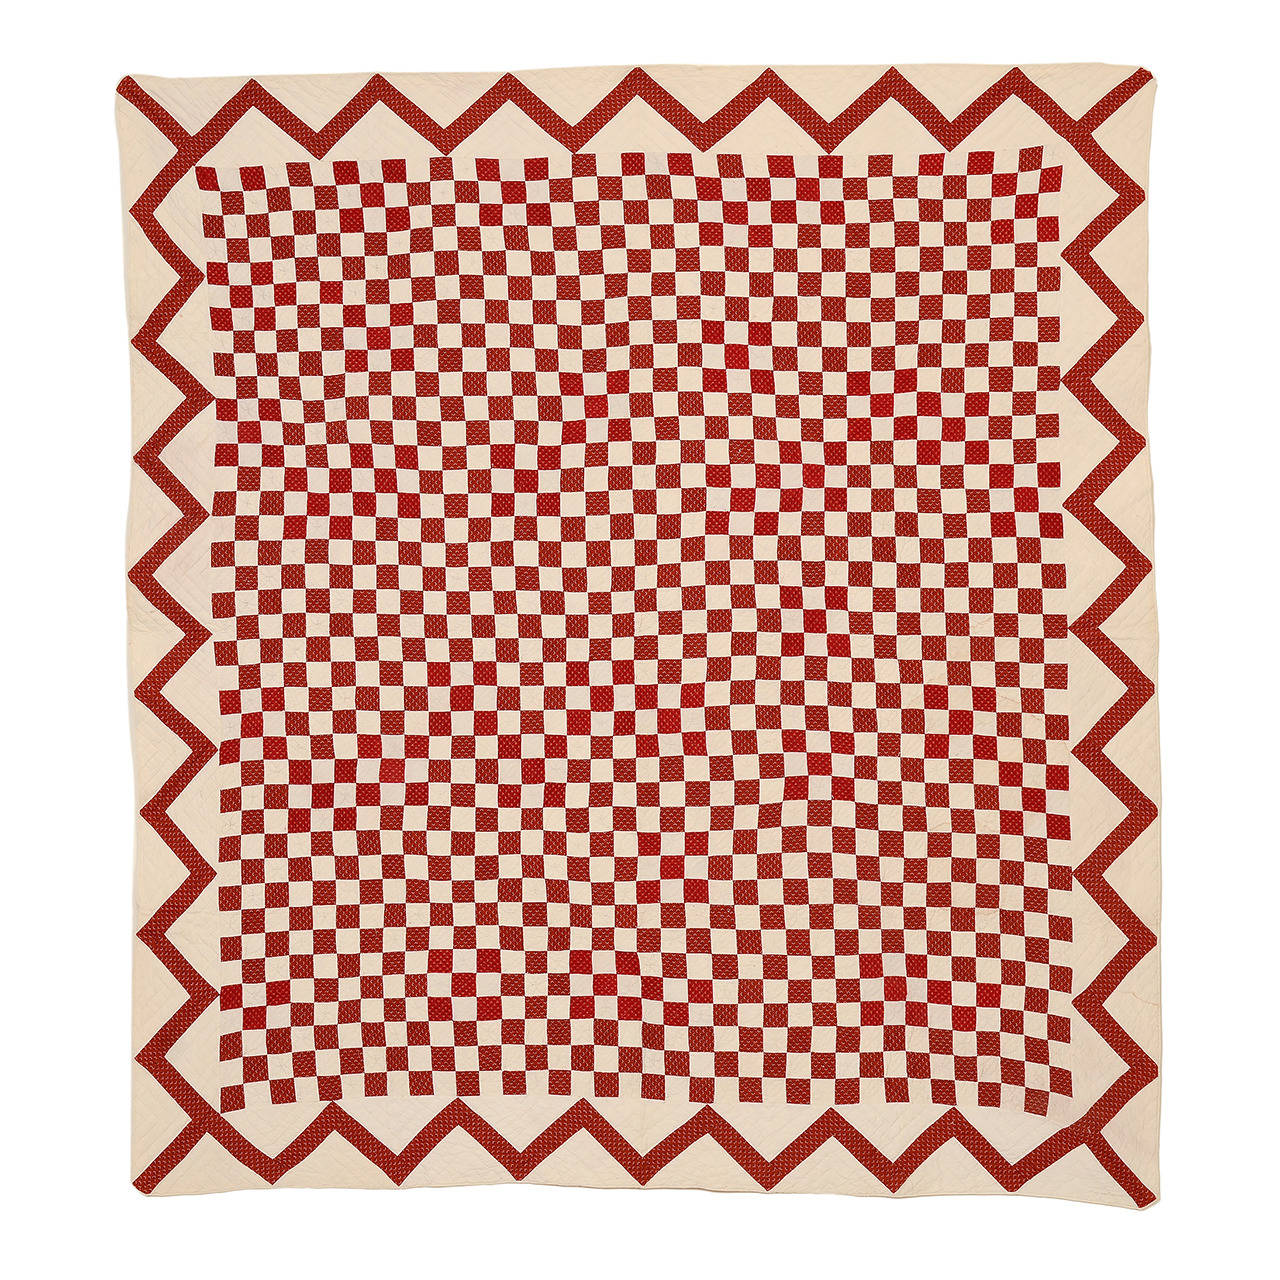 Checkerboard Quilt with Zigzag Border